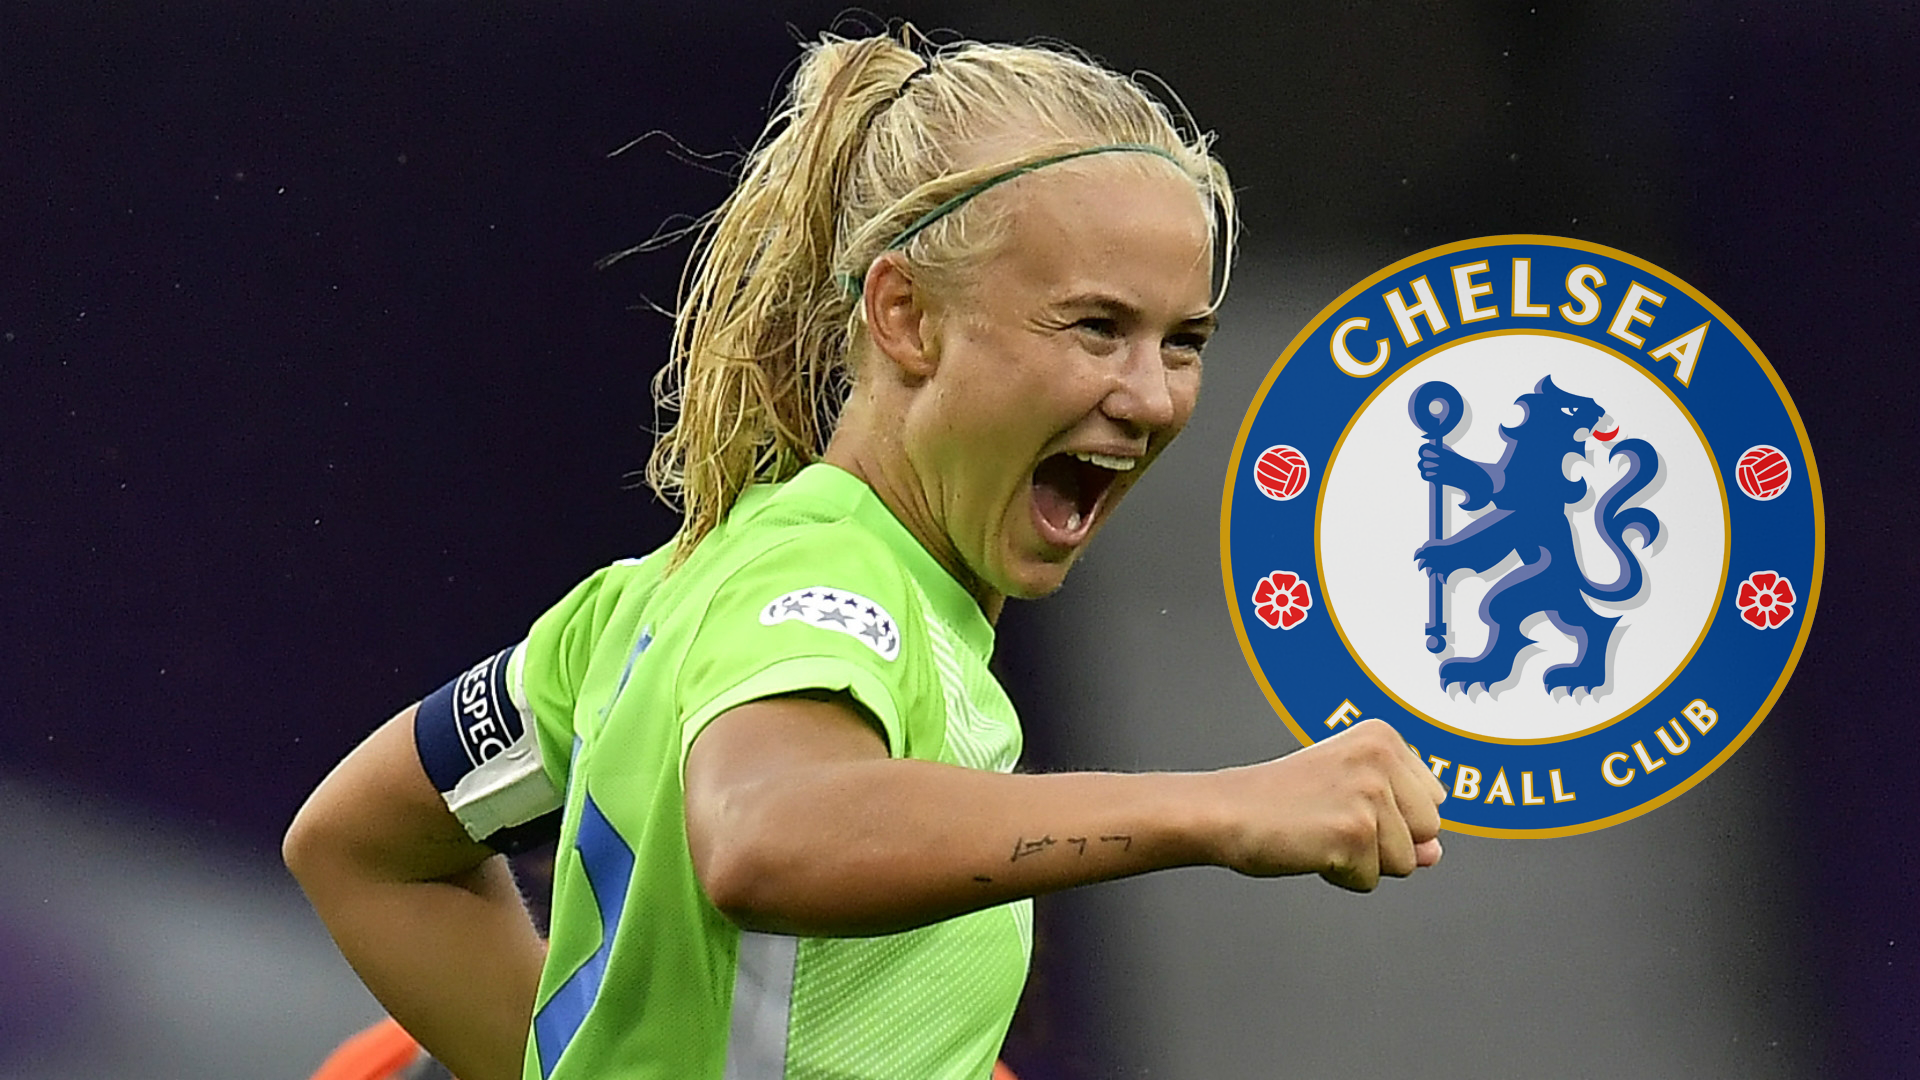 Danish star Harder joins WSL champions Chelsea from Wolfsburg